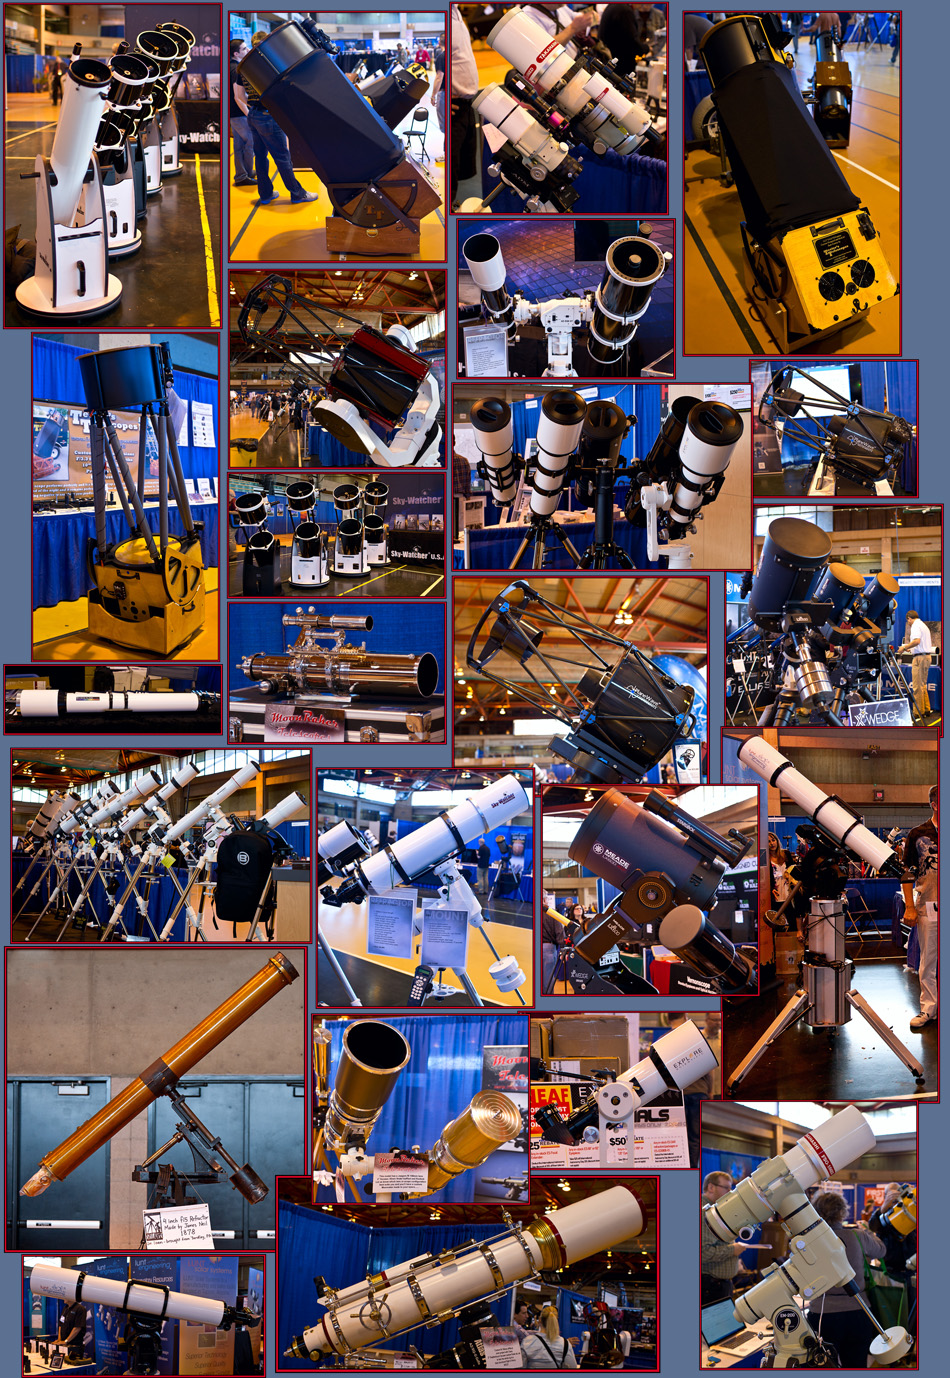 Telescopes - NEAF 2015